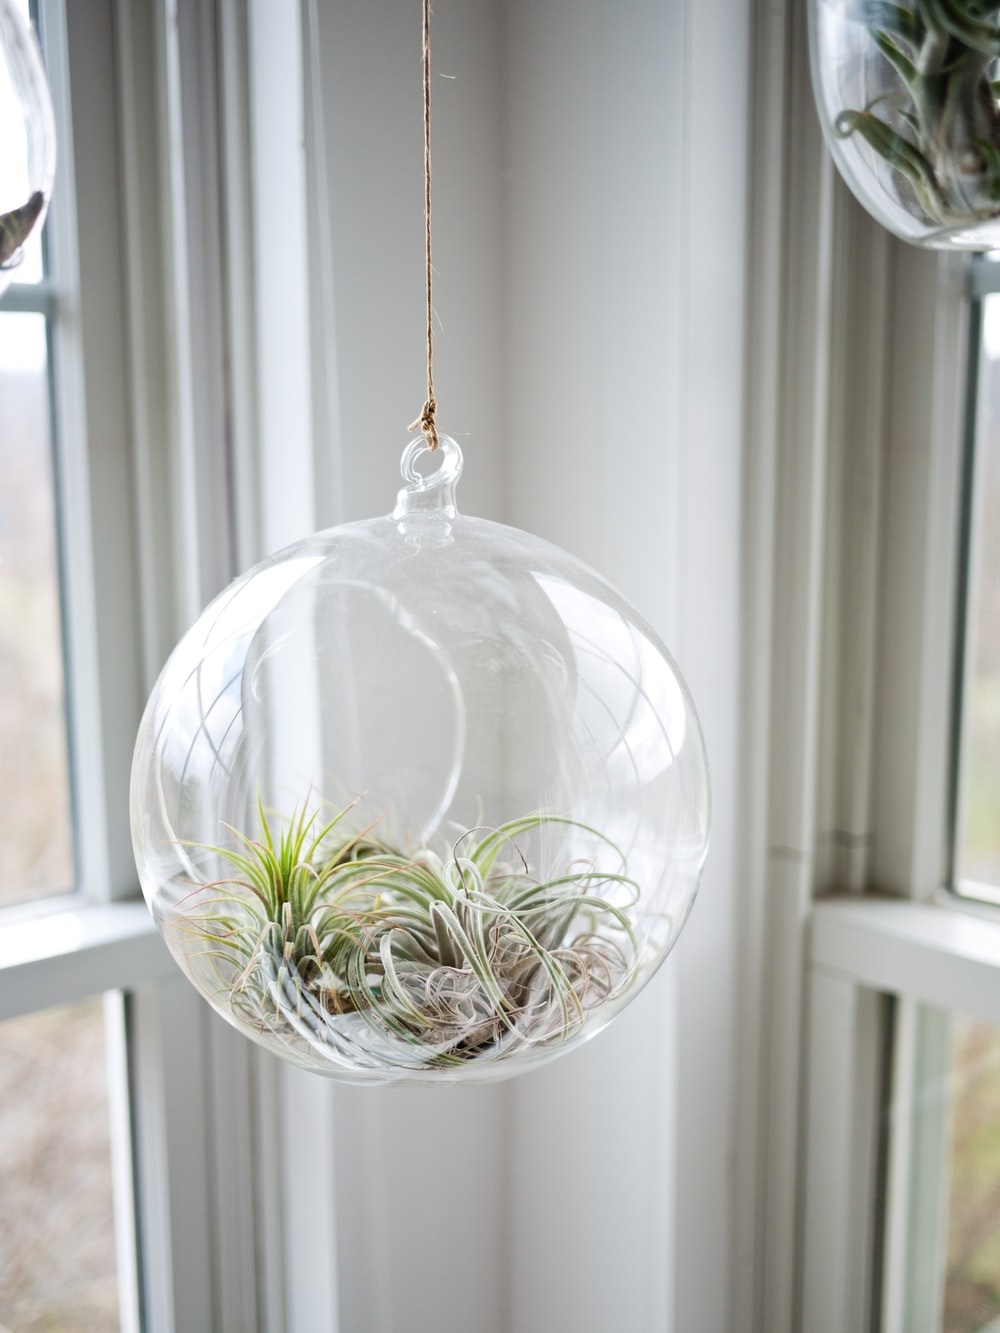 shallow focus photography of clear glass hanging terrarium